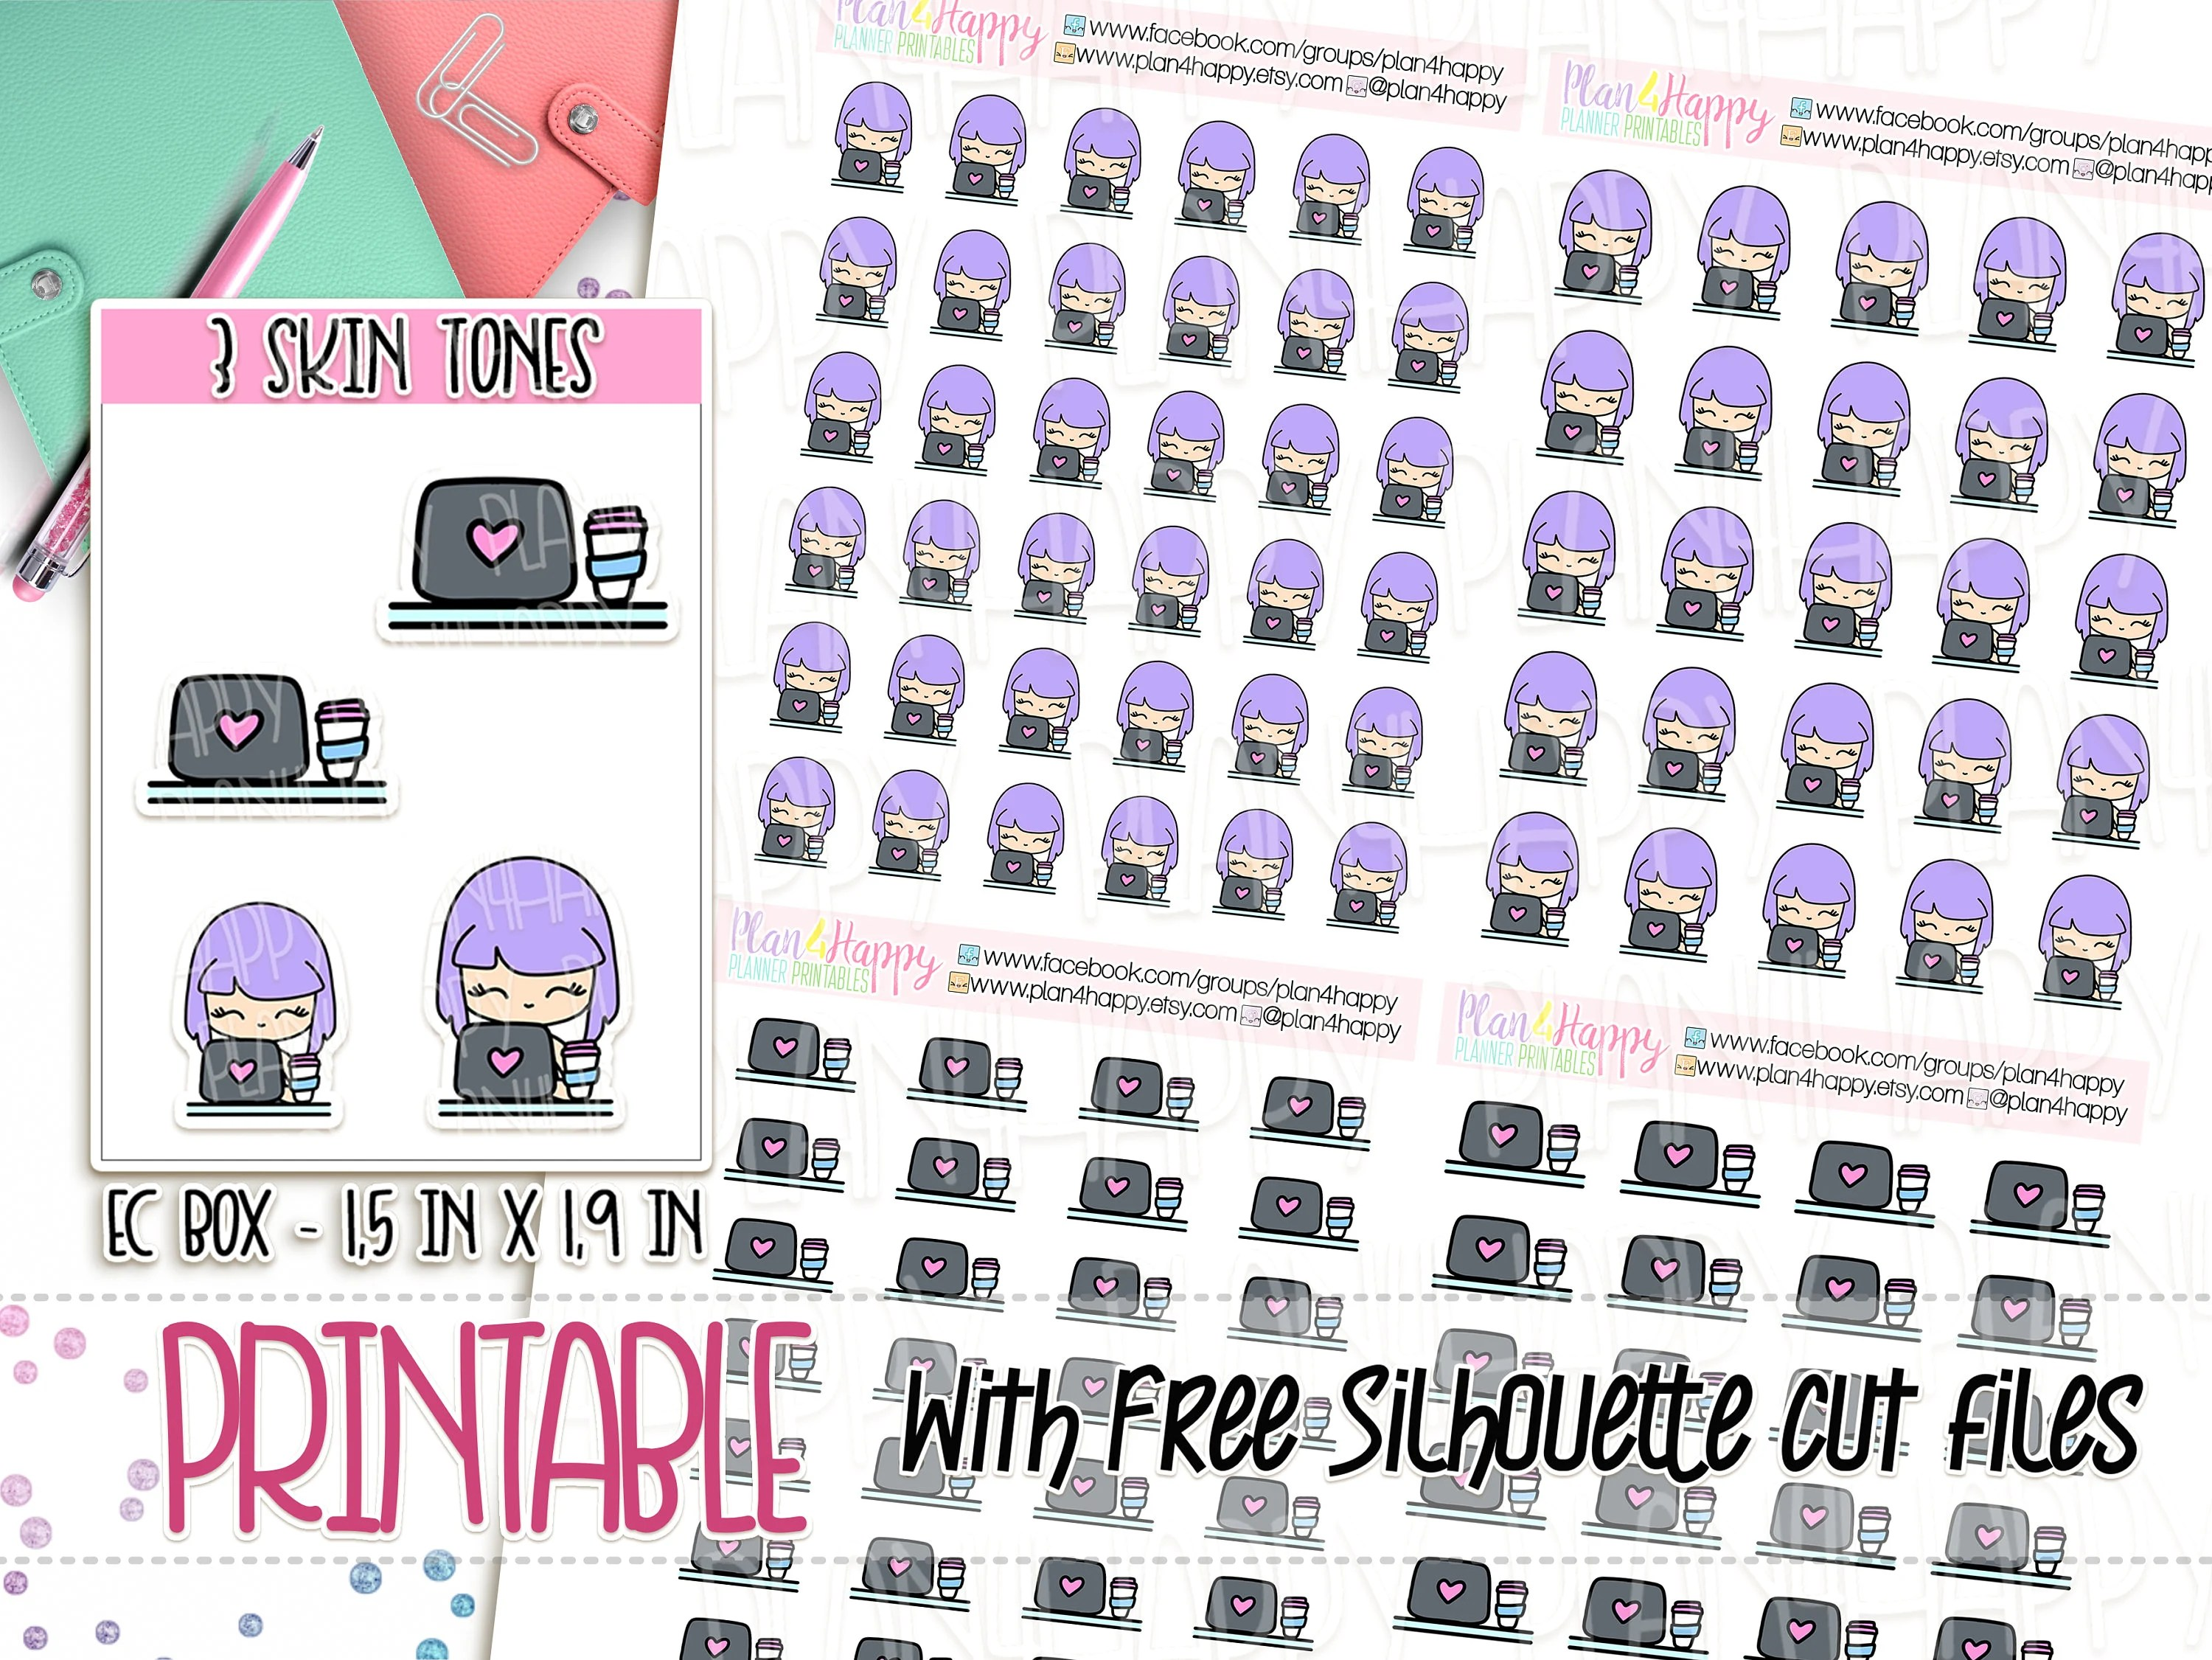 Printable Planner Stickers Piper 3 Skin Tones Laptop Etsy